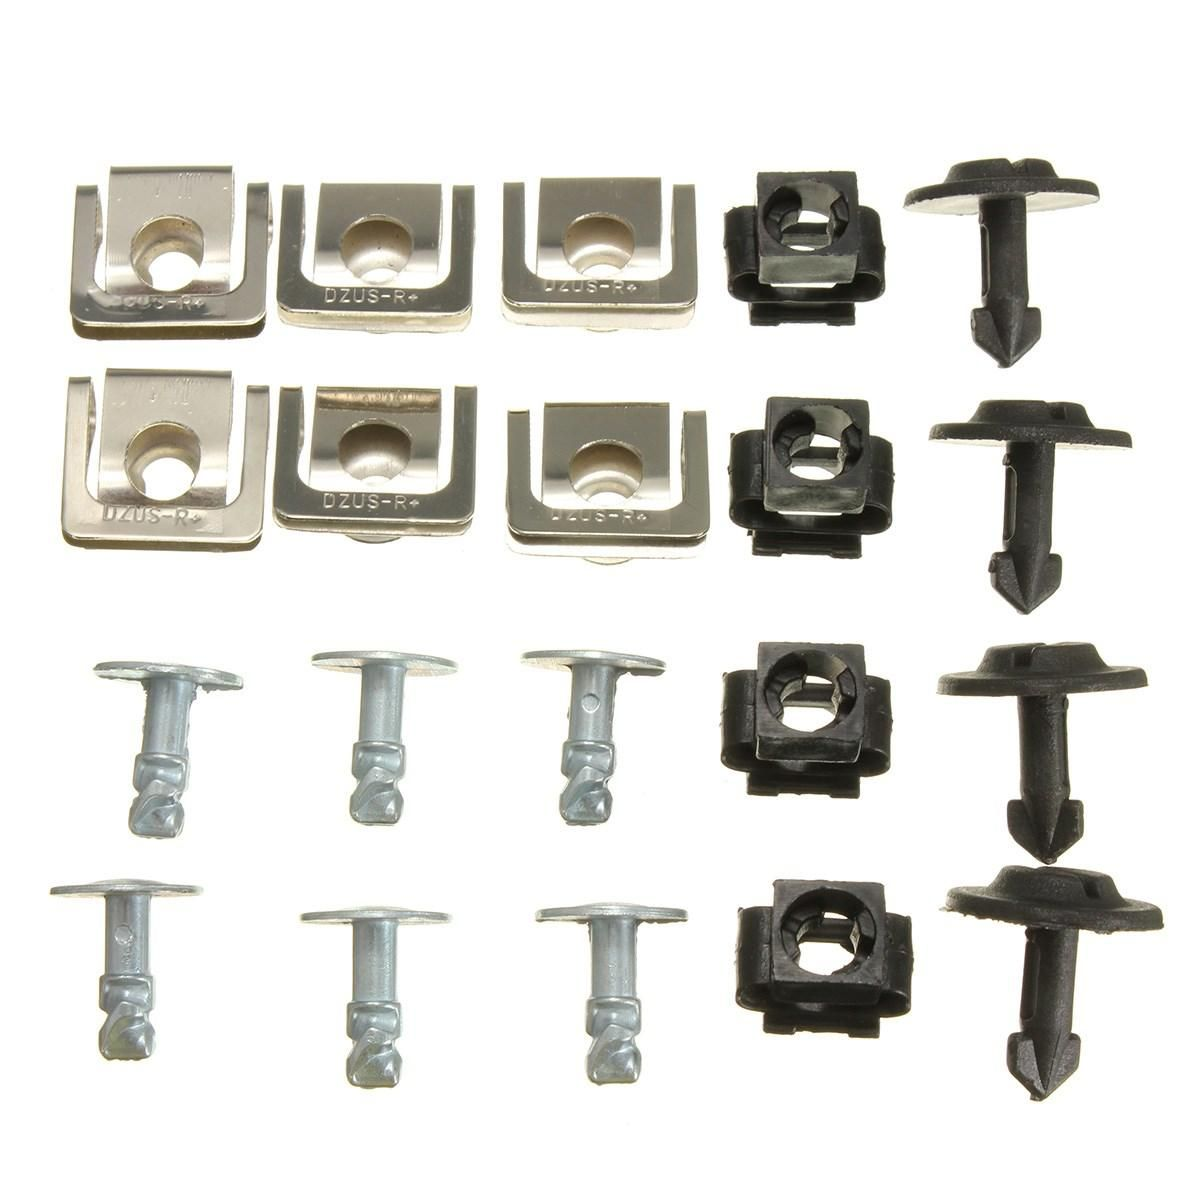 Set Undertray Guard Engine Under Cover Fixing Clips Audi A4 Audi Fittings